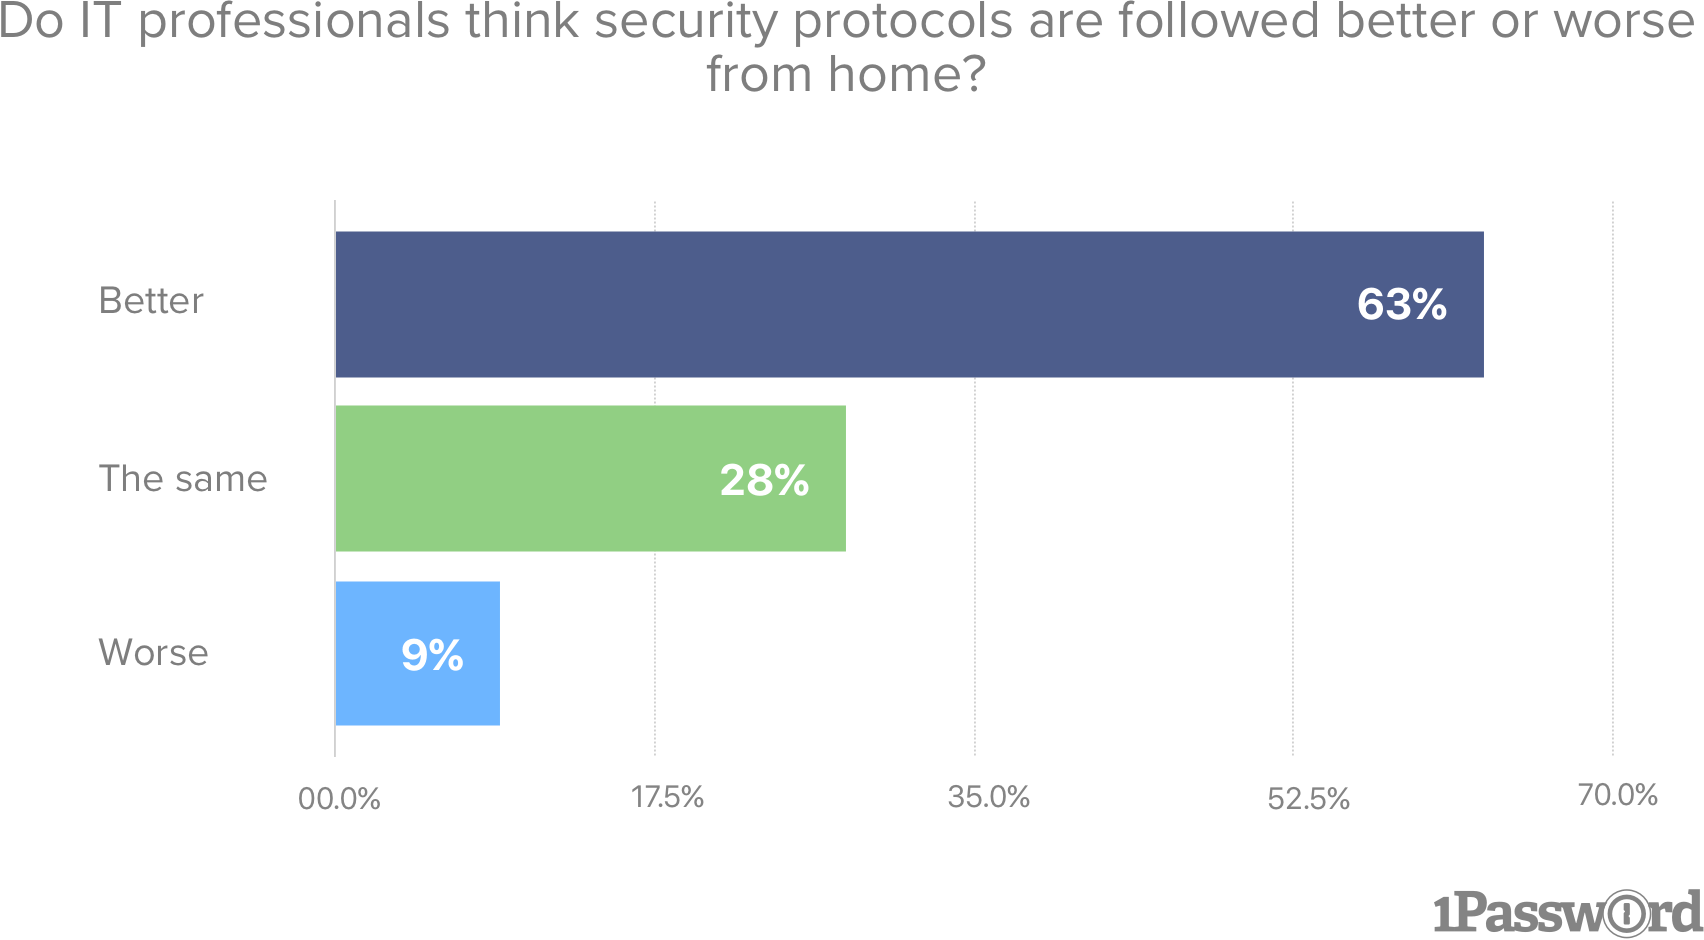 Do IT professionals think security protocols are followed better or worse from home?